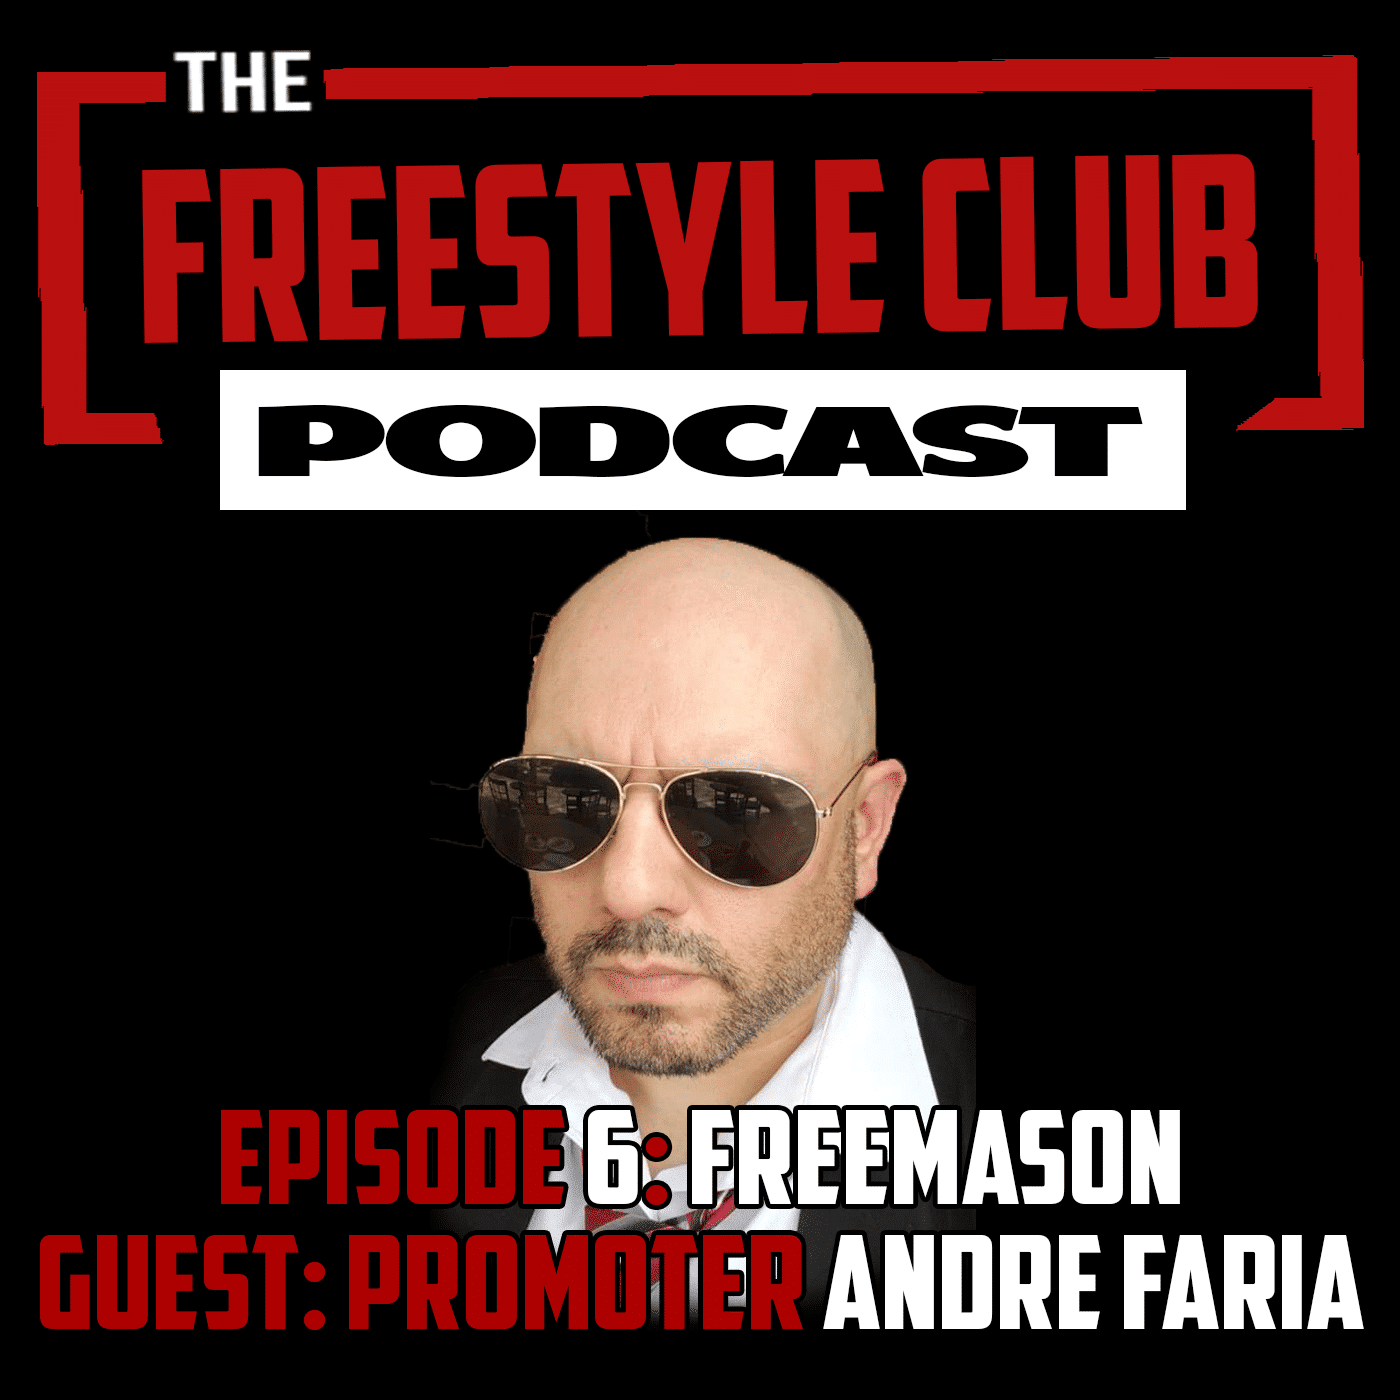 The Freestyle Club Episode 6